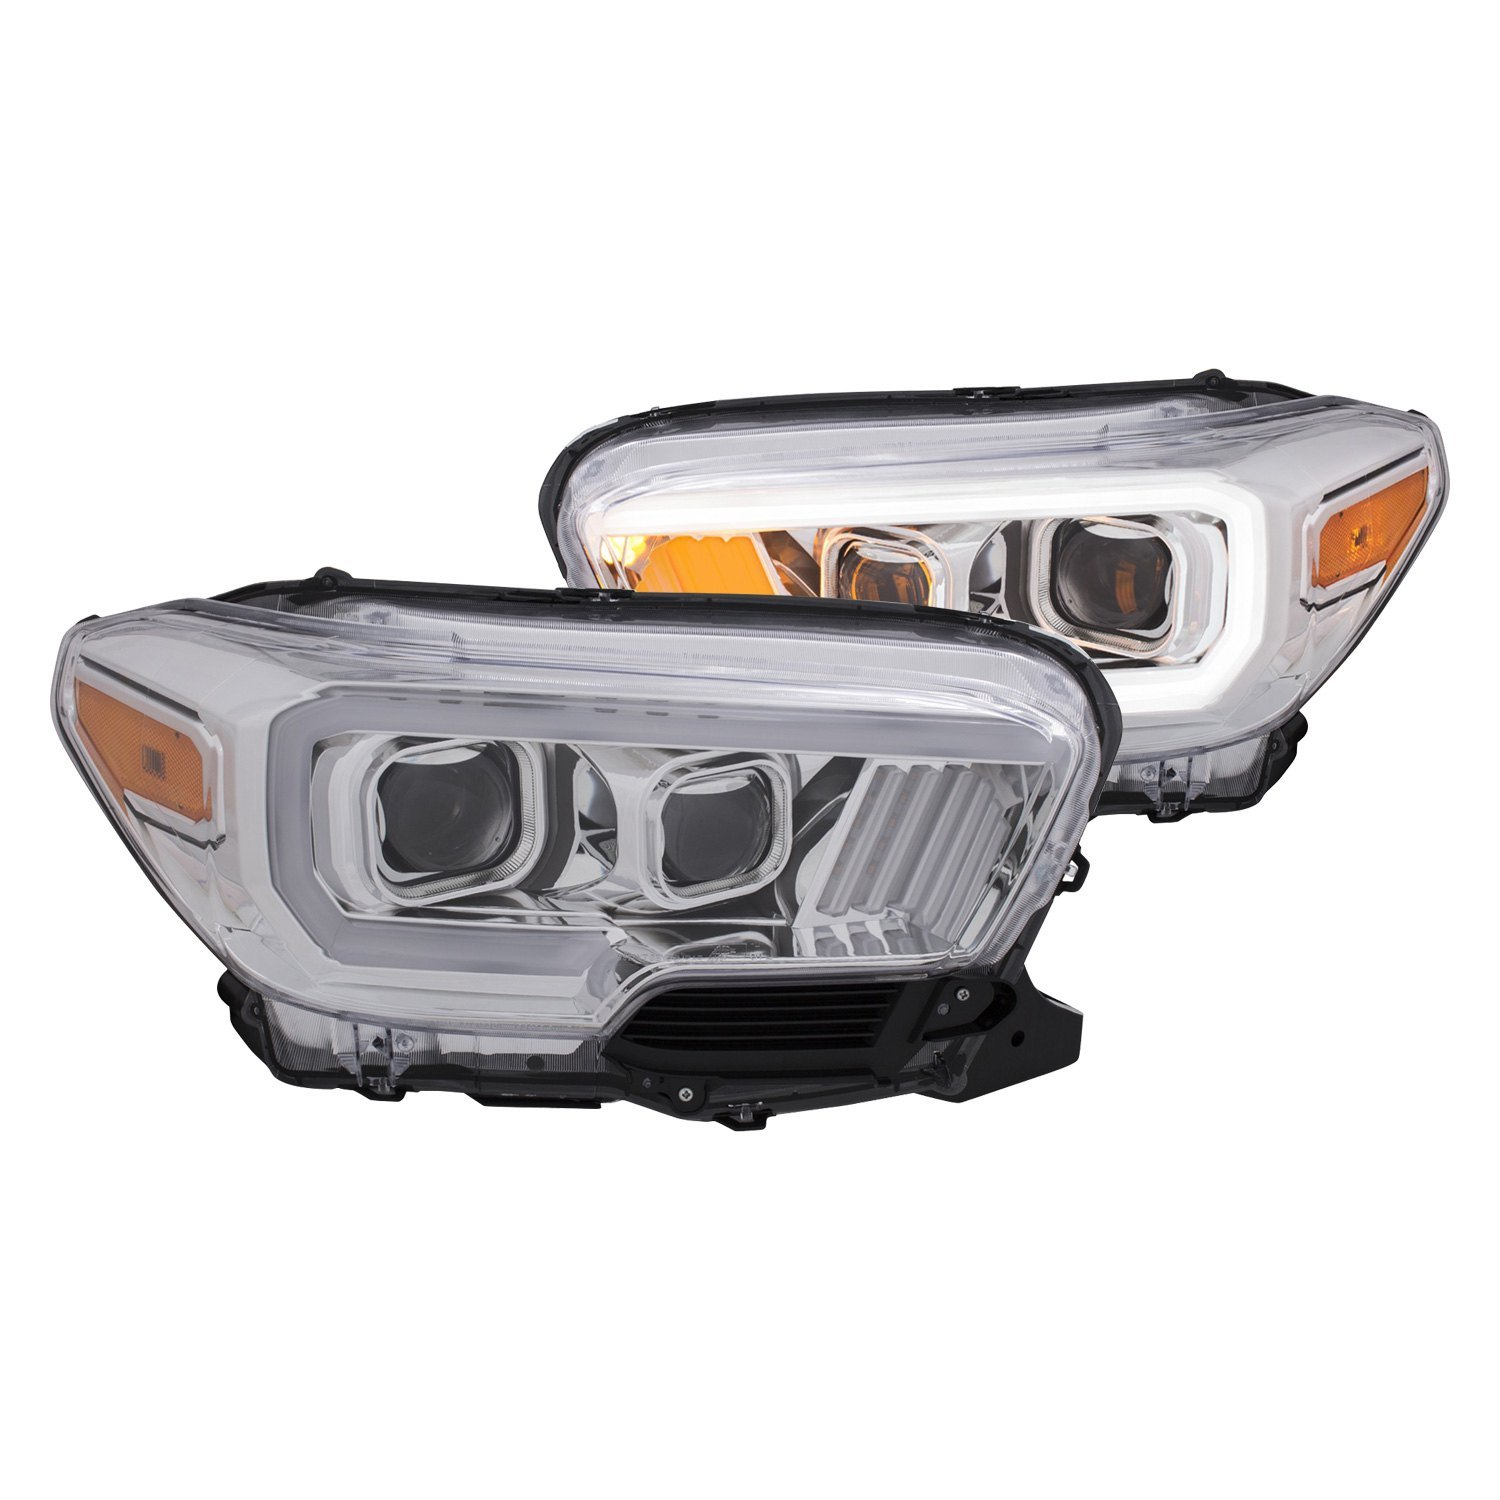 Anzo chrome u bar projector headlights with amber led turn signals